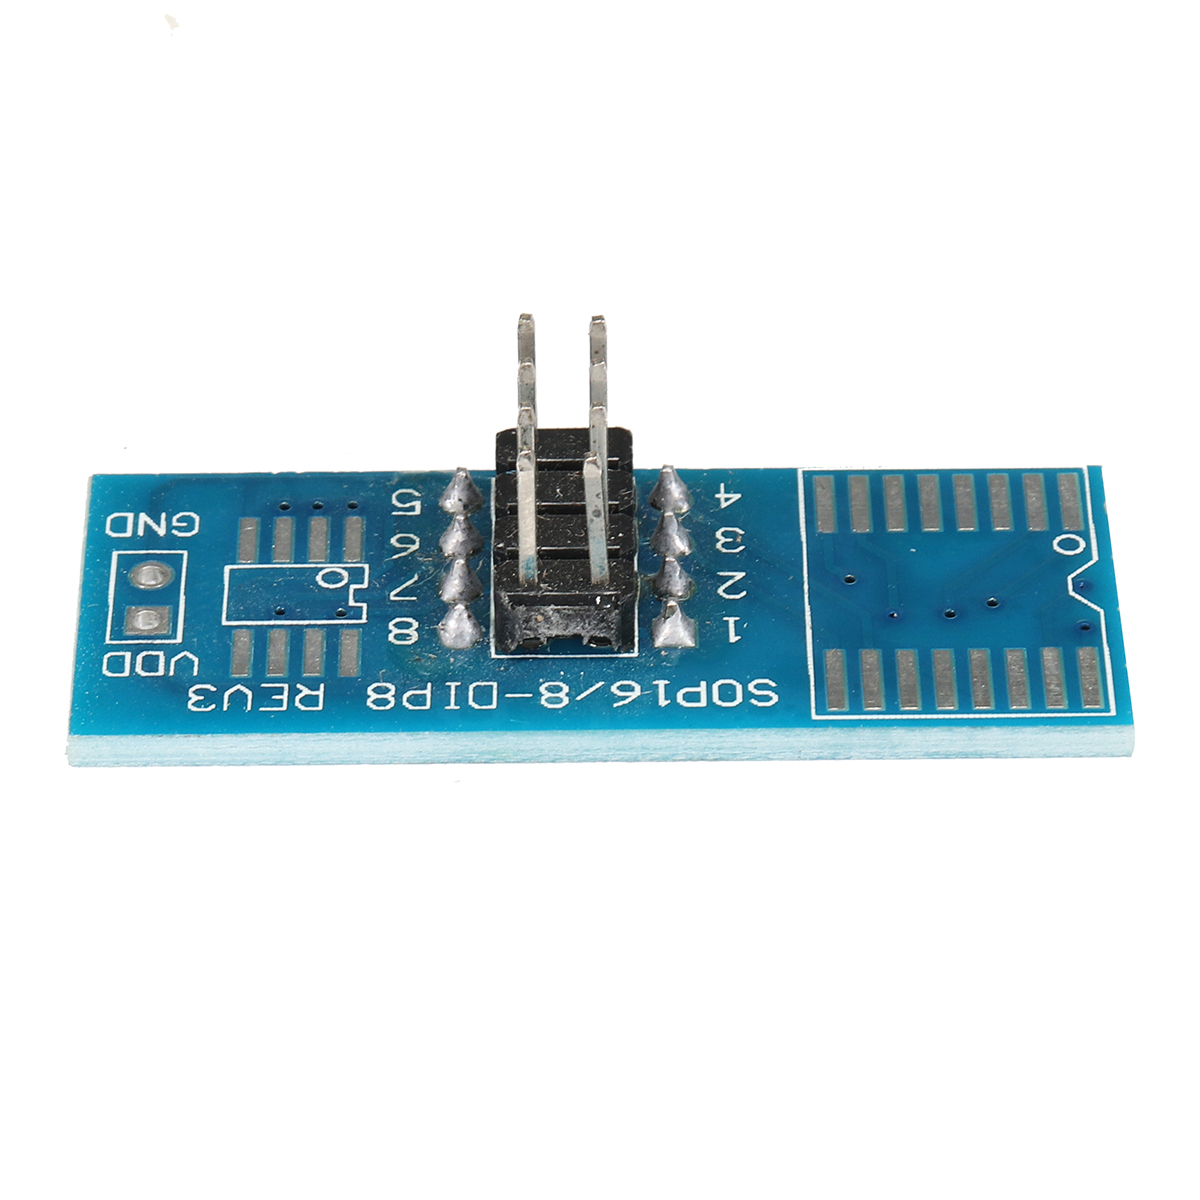 ezp2010 usb high speed eeprom spi bios programmer support